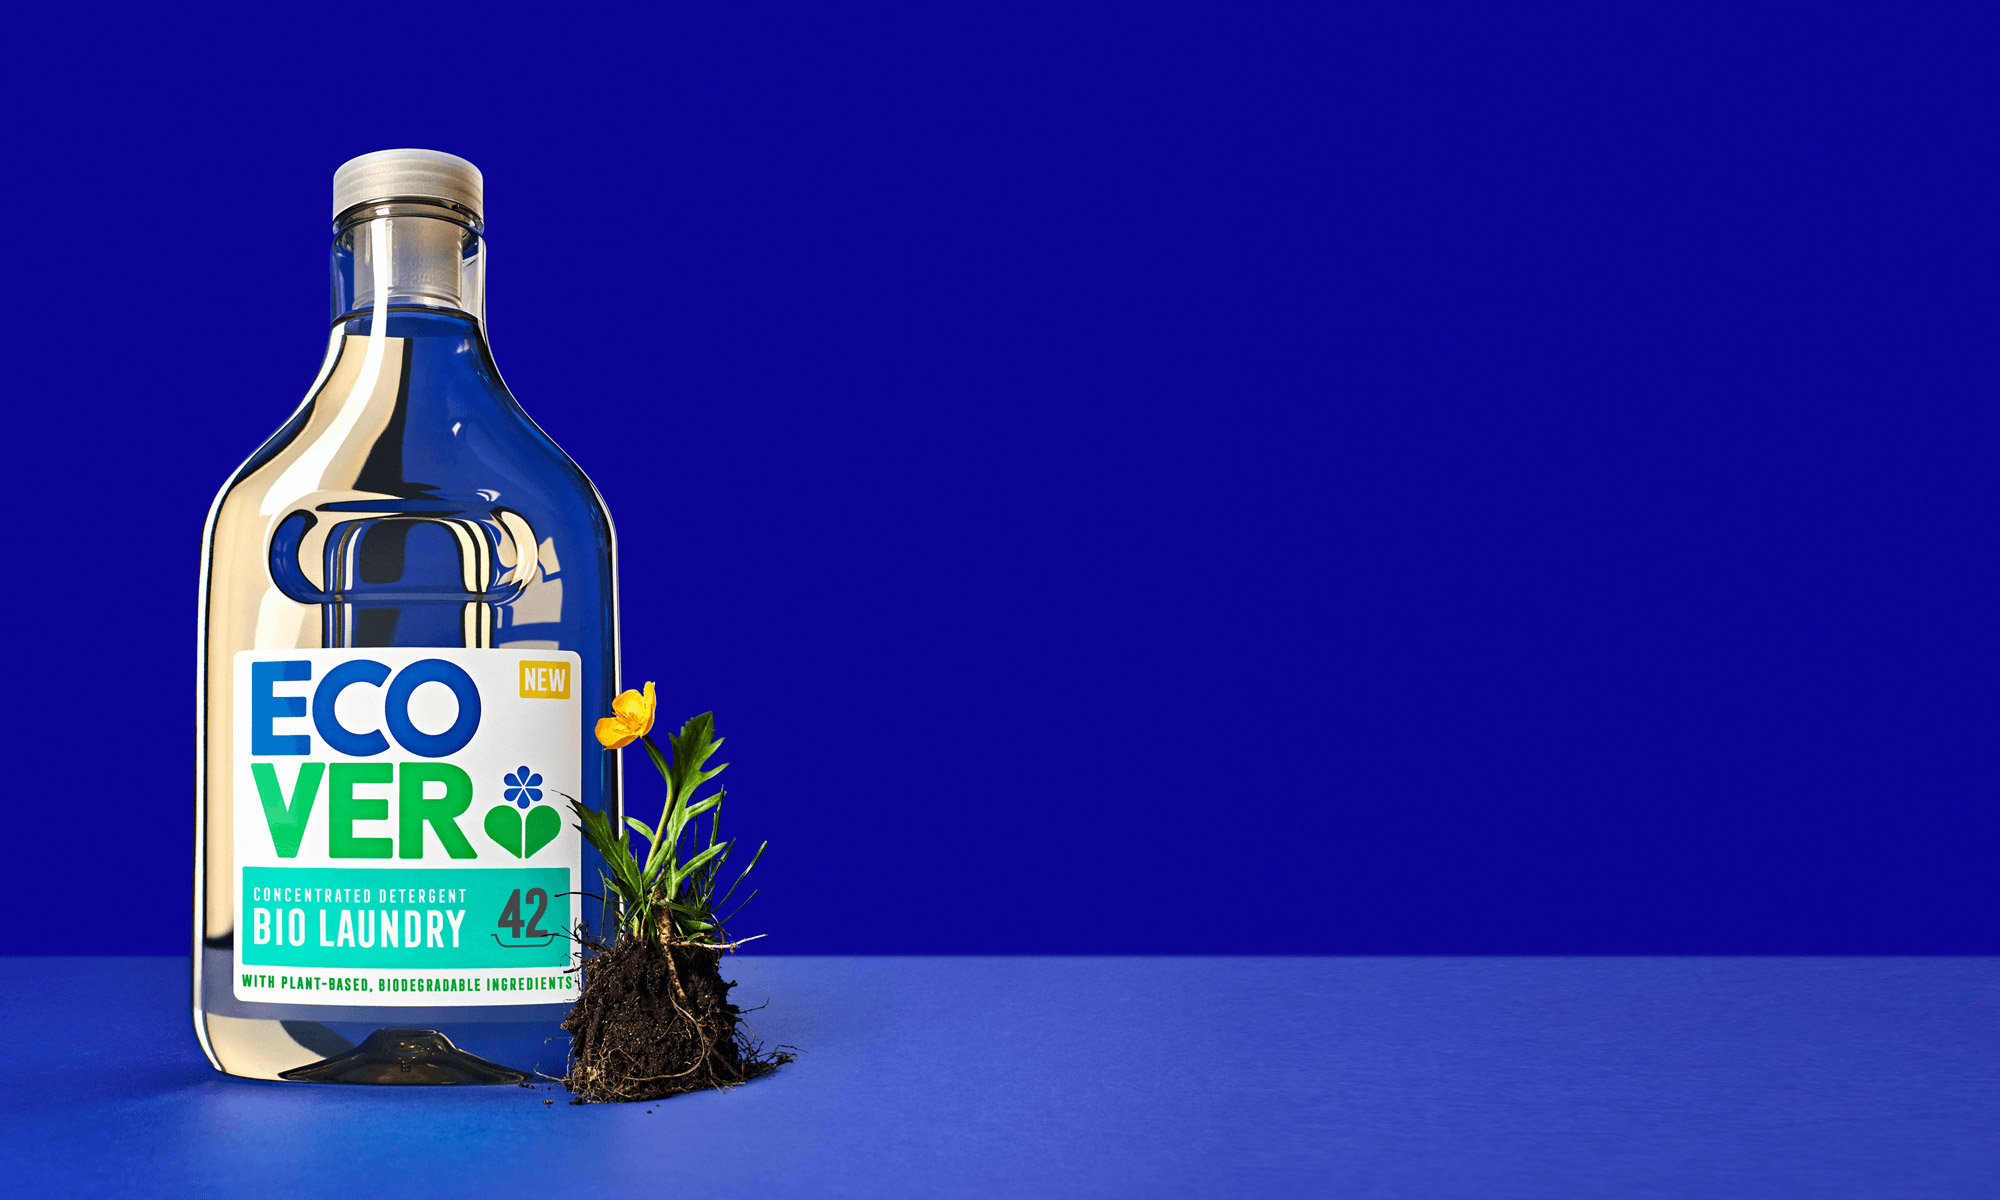 Ecover environmentally friendly cleaning product